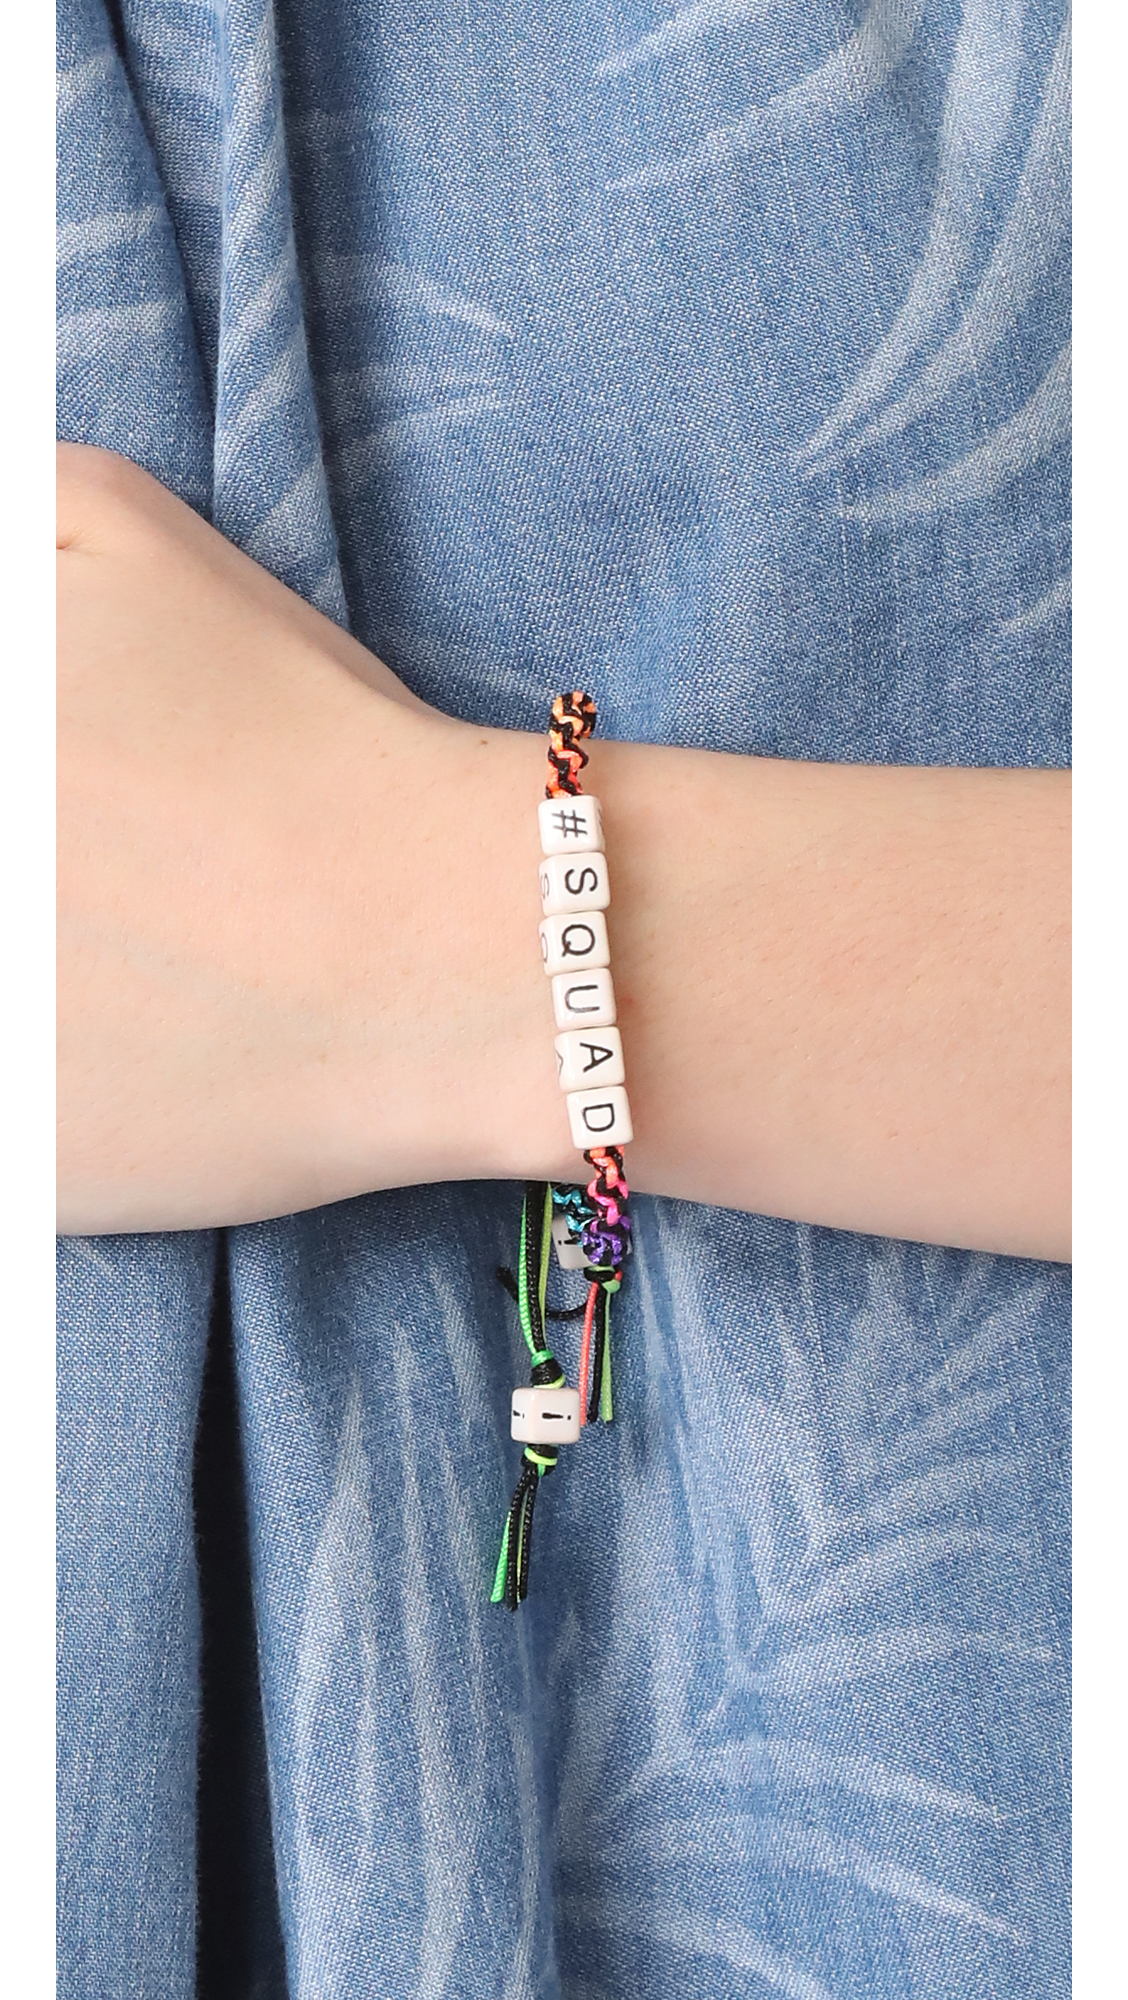 back debbie harry better bracelets you your squad friendship are than and bracelet now pin ever